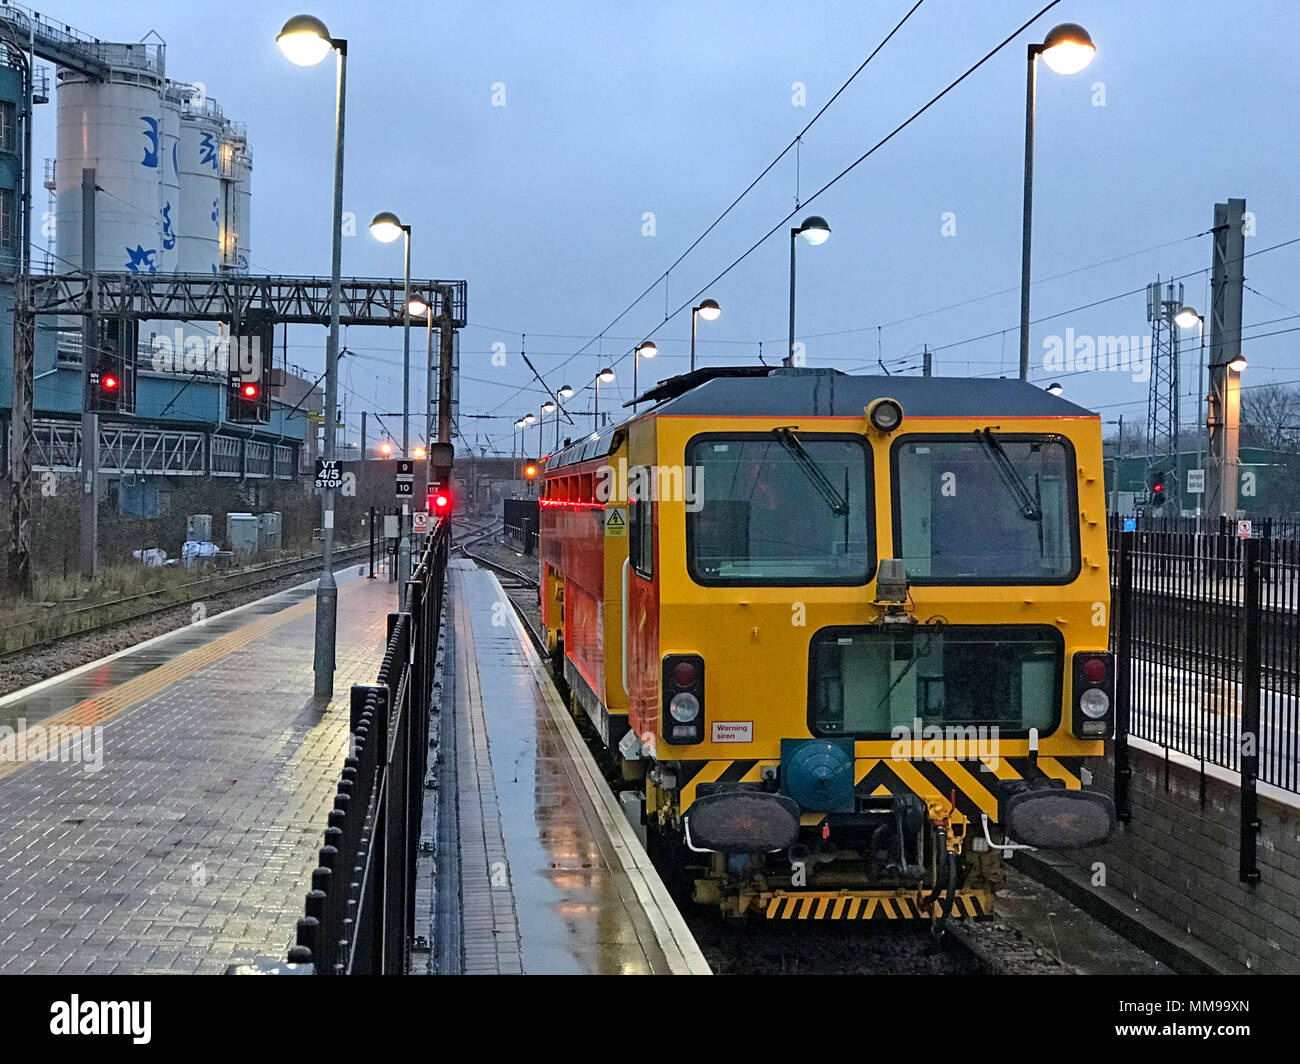 Railway track maintenance engine vehicle, Warrington Bank Quay station at dusk, Cheshire, England, UK, dusk, winter Stock Photo